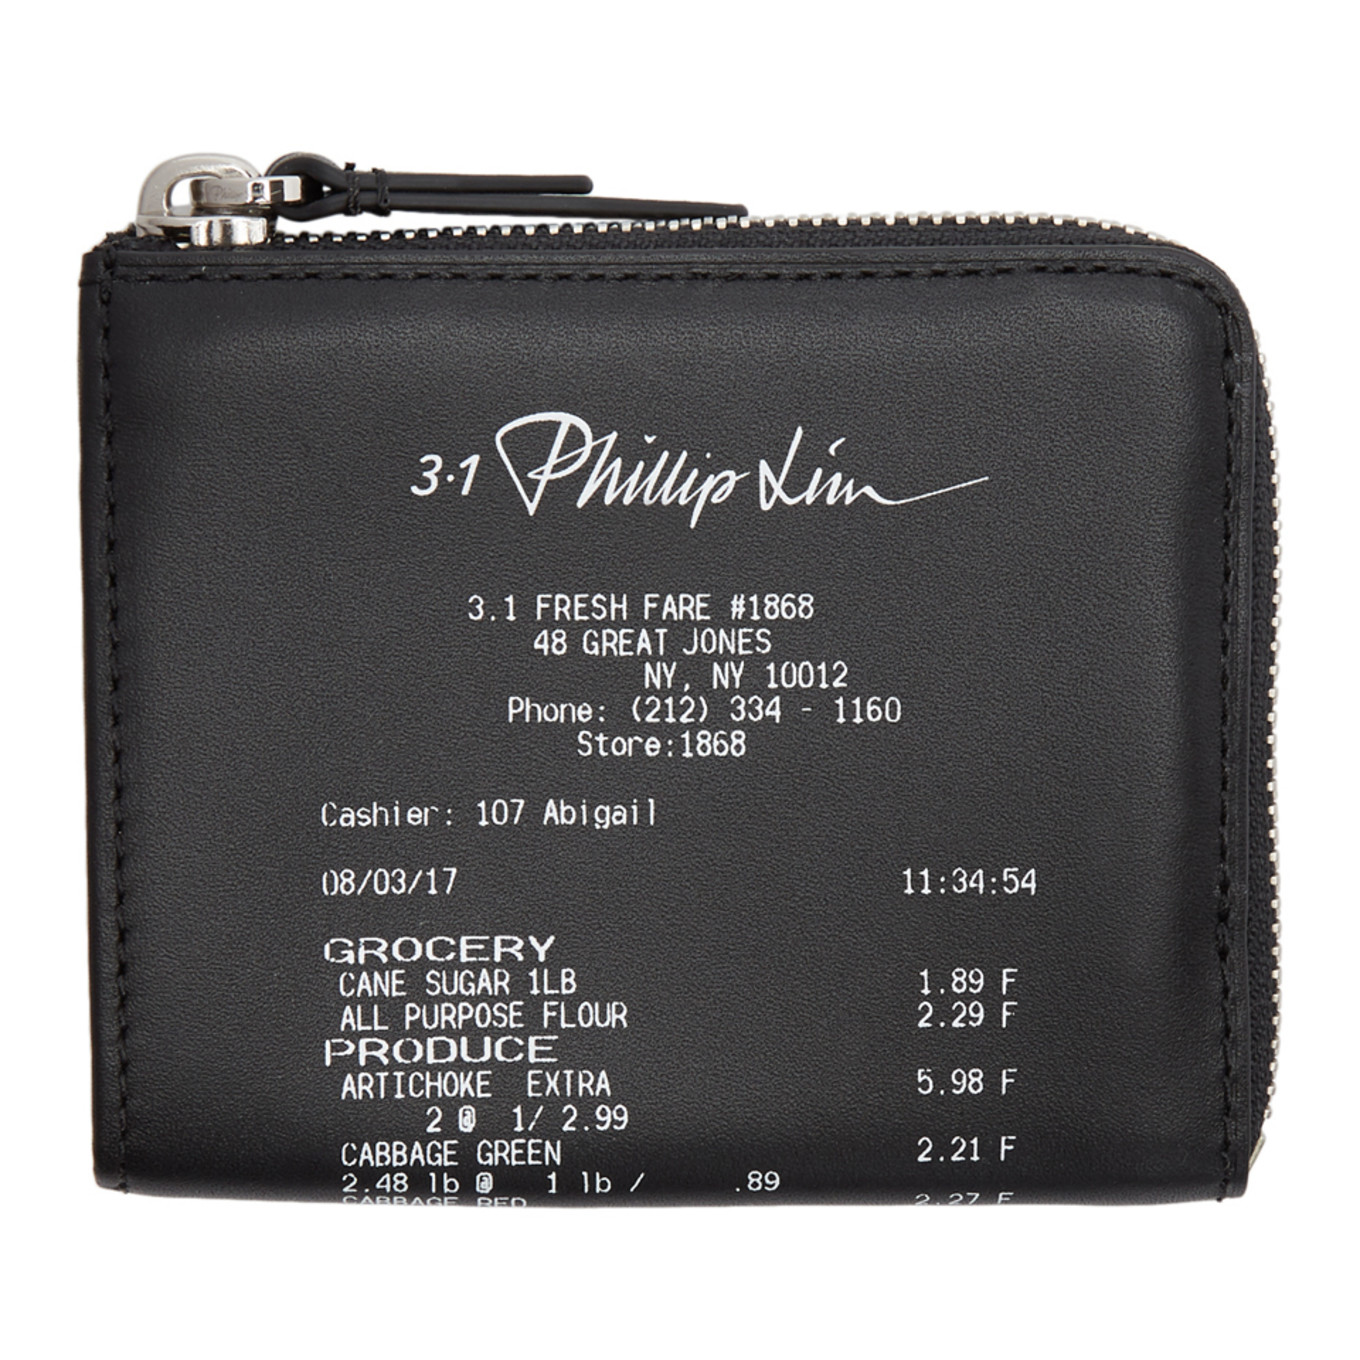 Black Mini Receipt Zip Around Wallet by 3.1 Phillip Lim